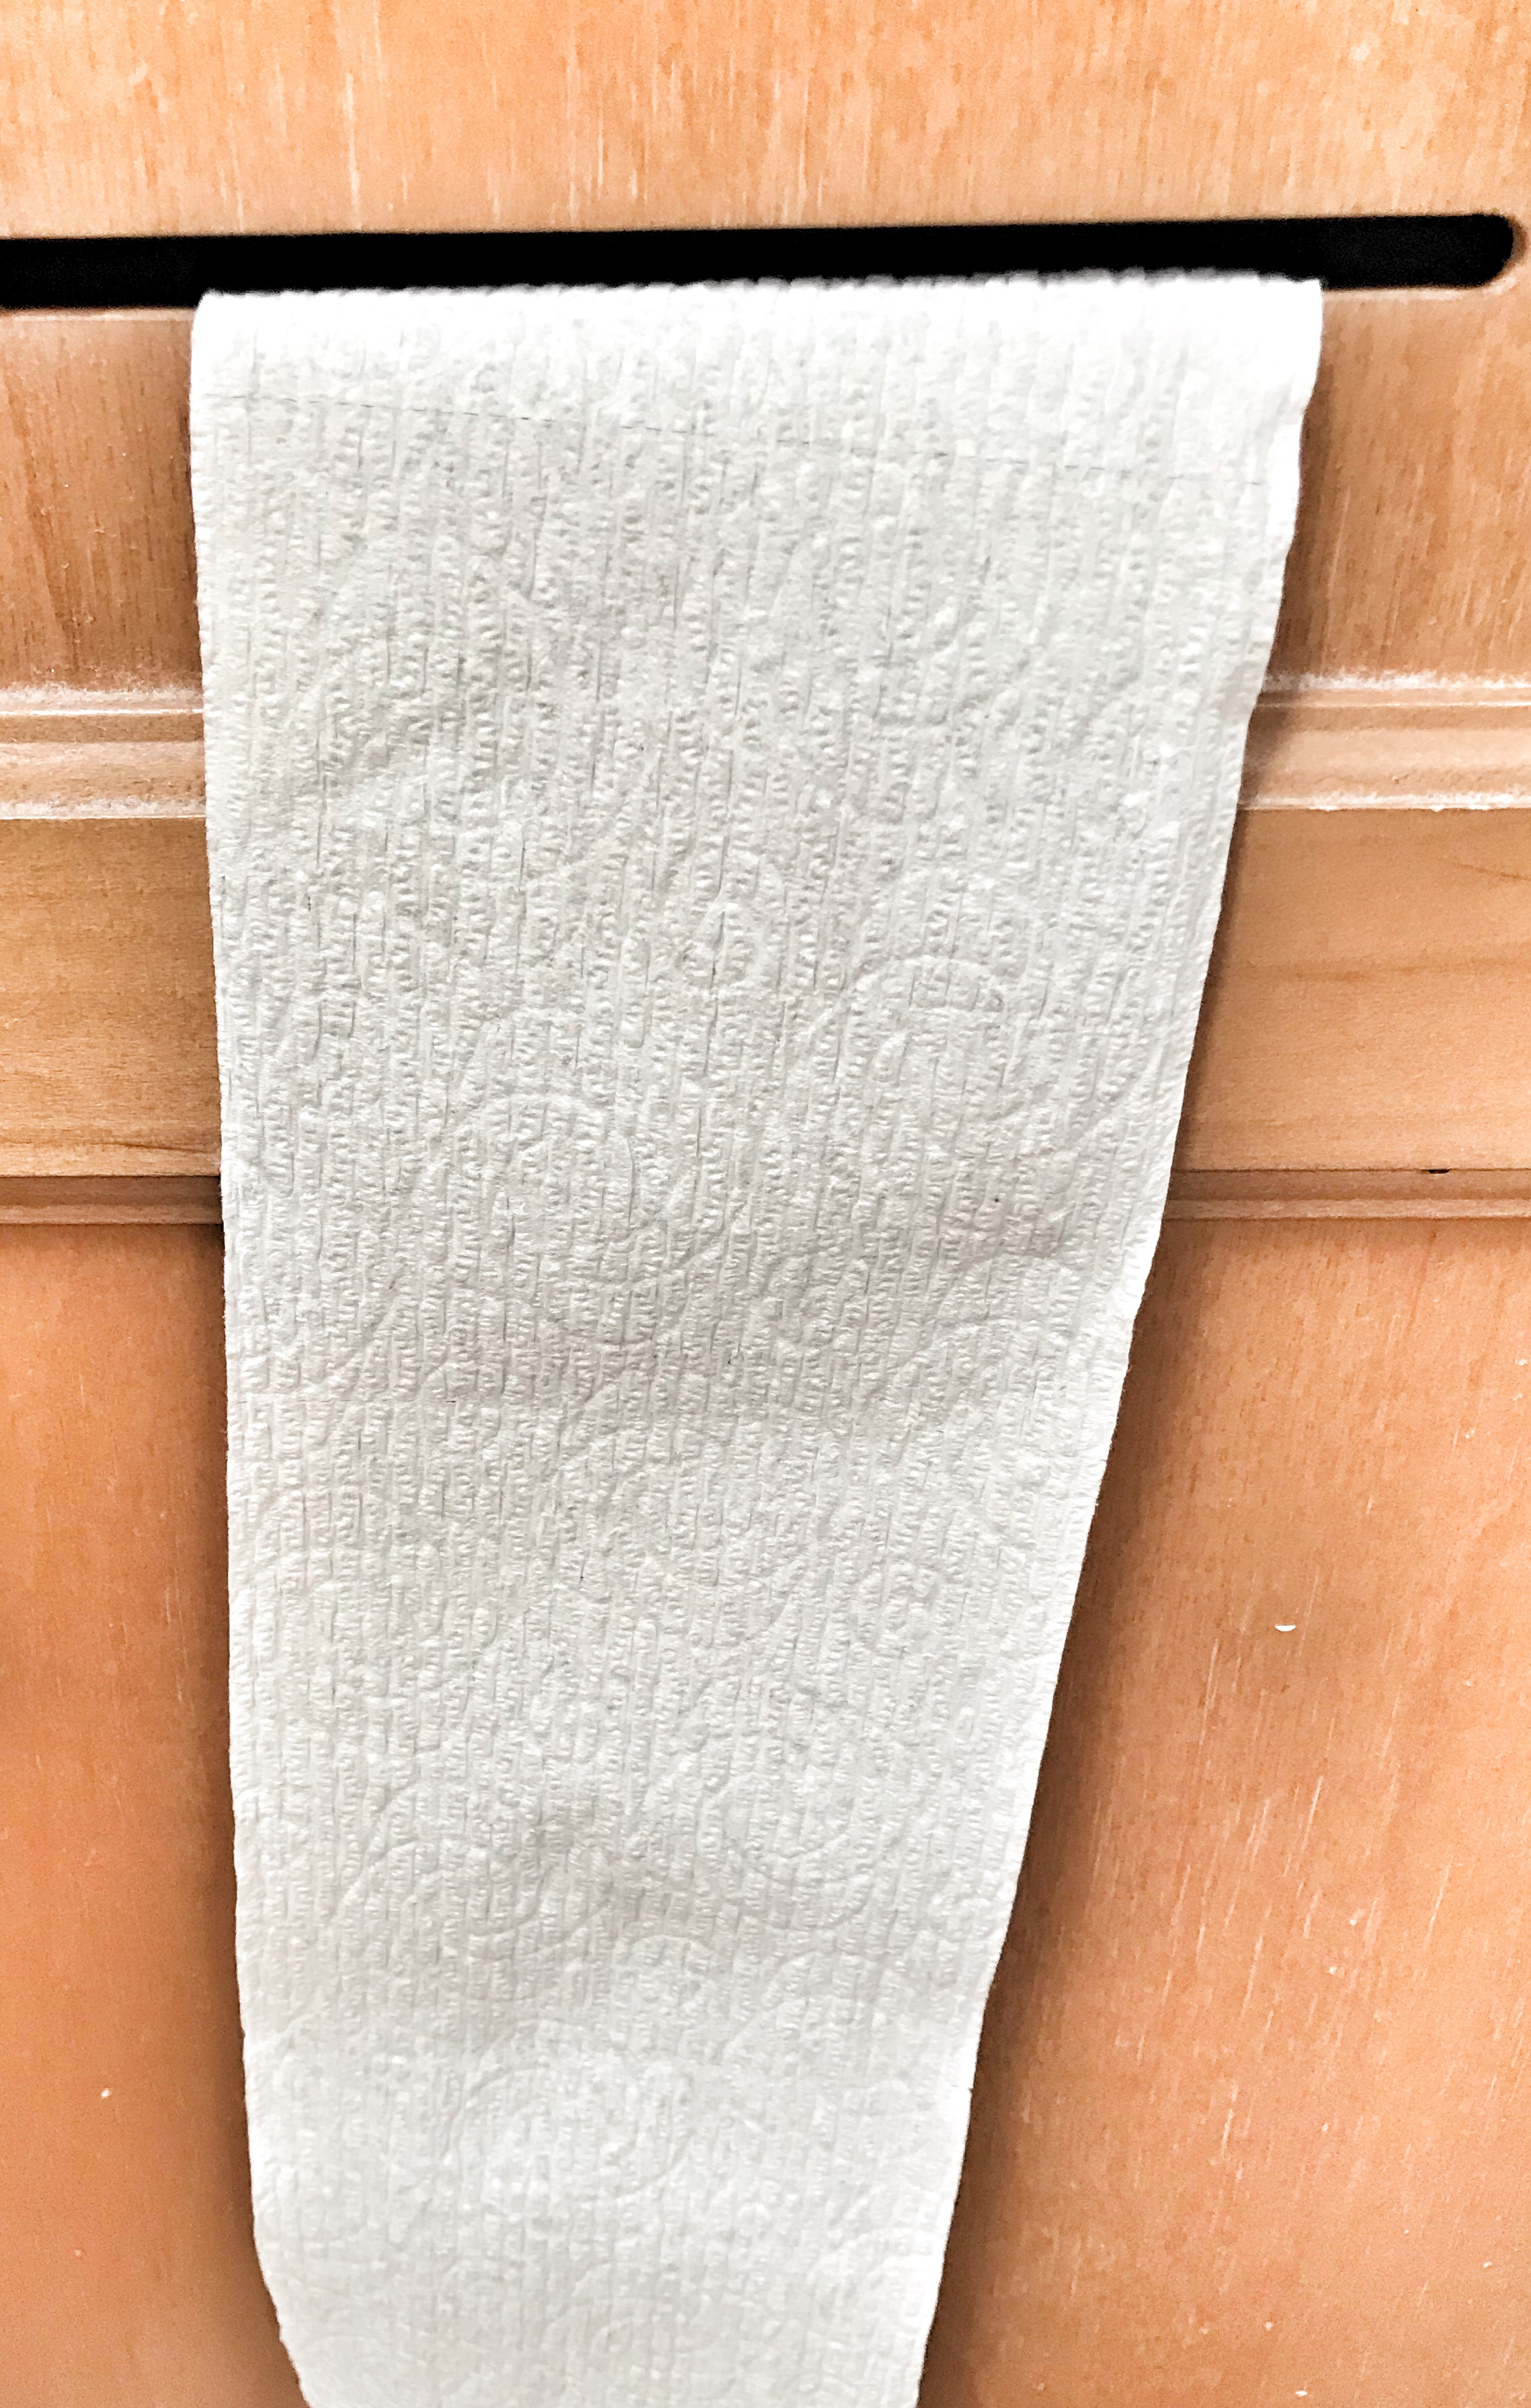 A clean piece of toilet paper